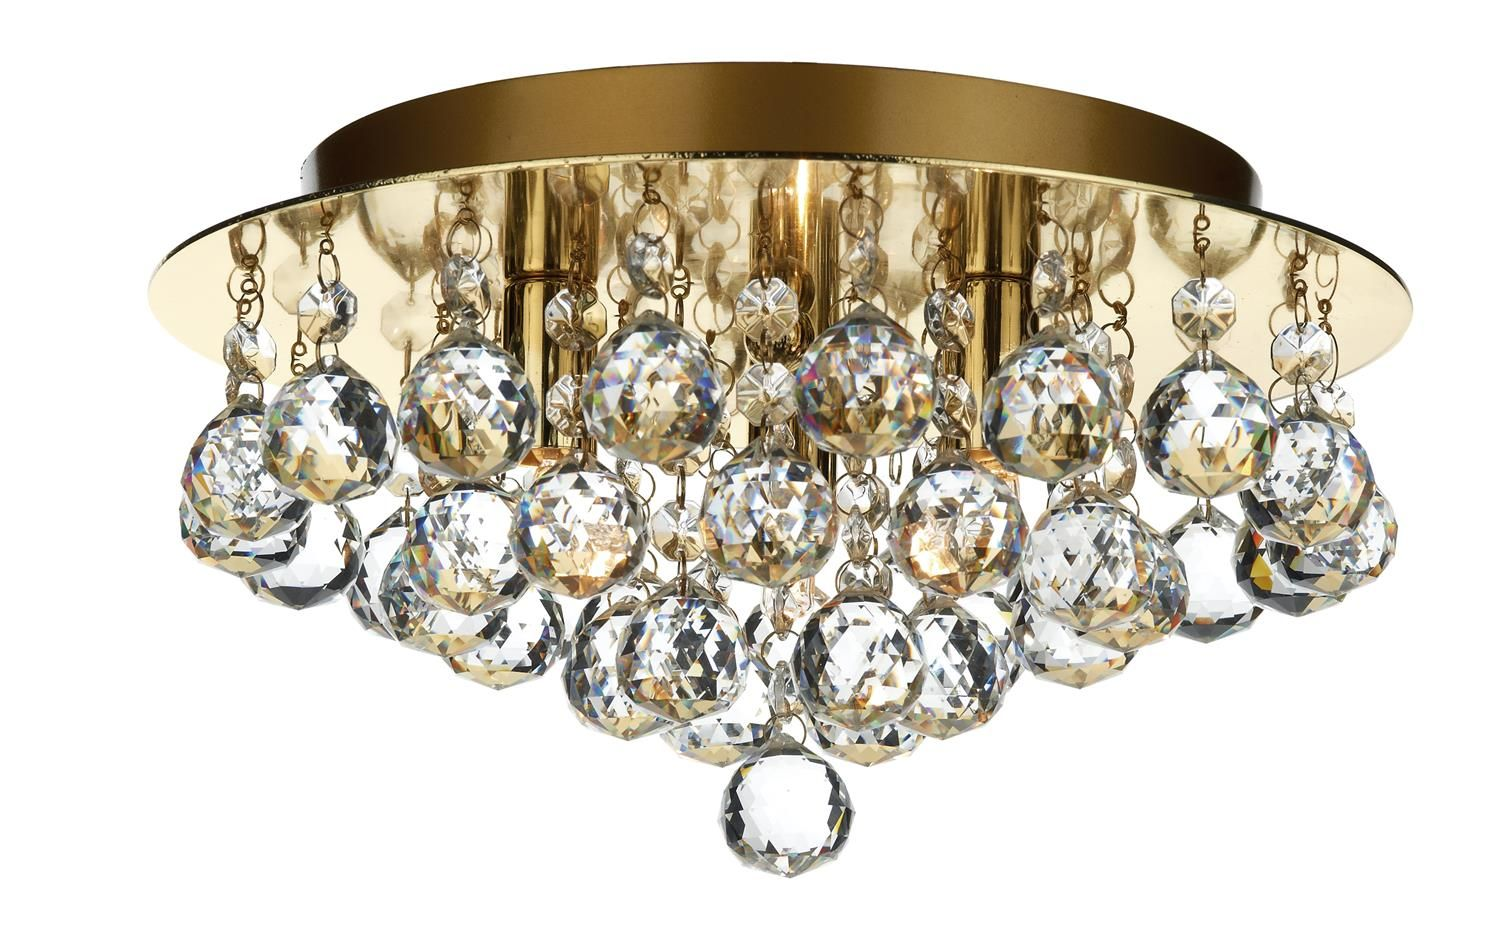 PLU5240 Pluto 3 Light Flush Fitting in Polished Brass Crystal Glass Decoration Fully Assembled Earthed 3 x 40w G9 Lamps included Height 16cm Diameter 29cm